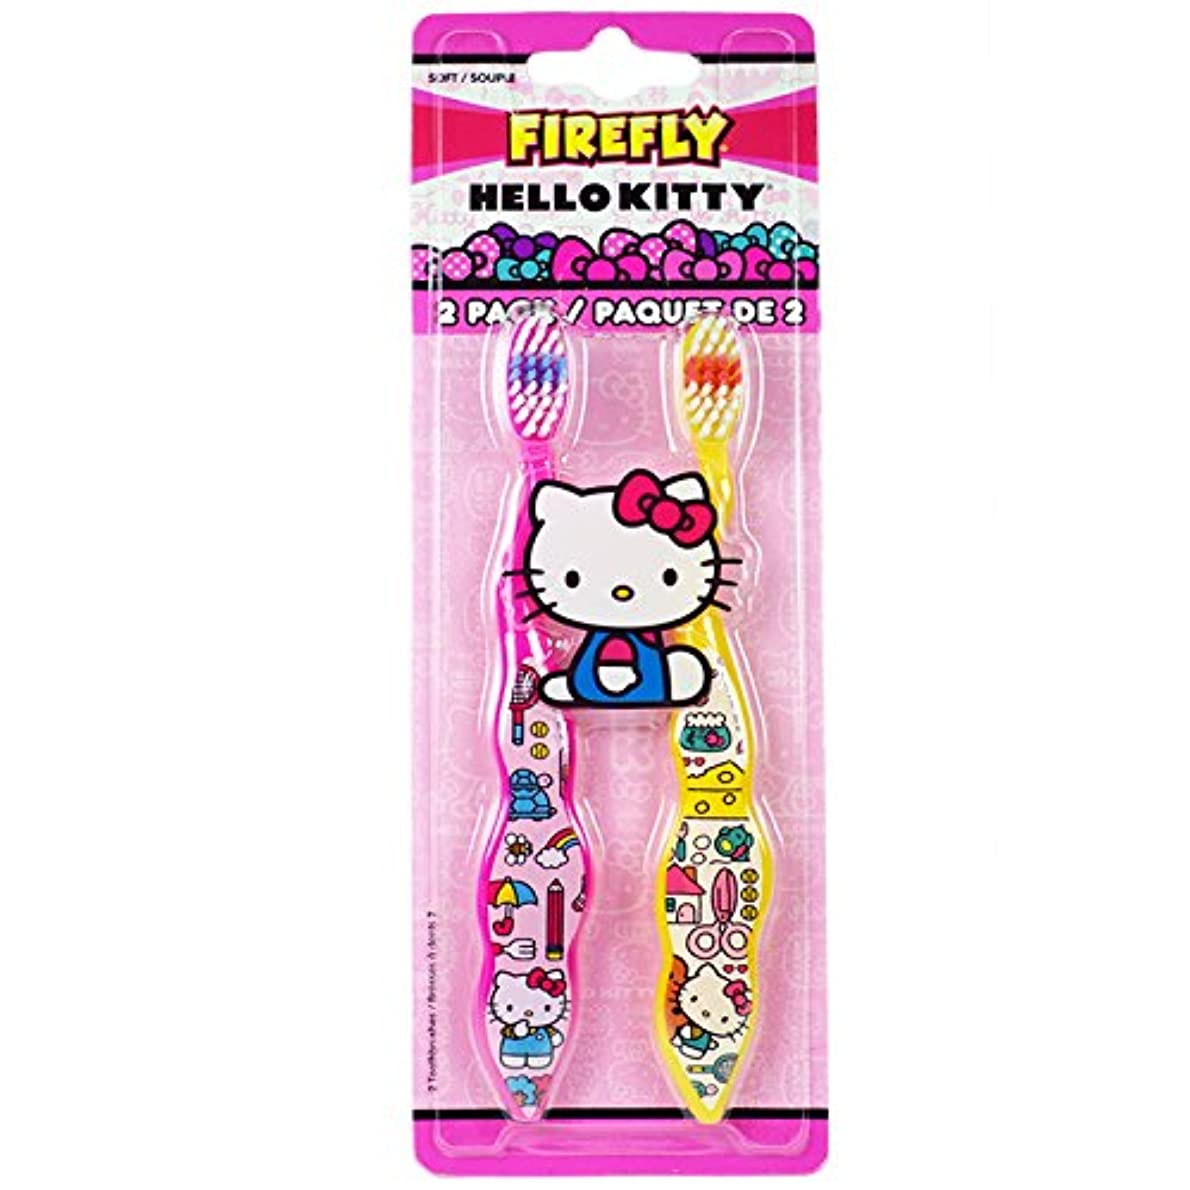 ツインベーシックマイクDr. Fresh Firefly Hello Kitty Toothbrush, Soft by Firefly